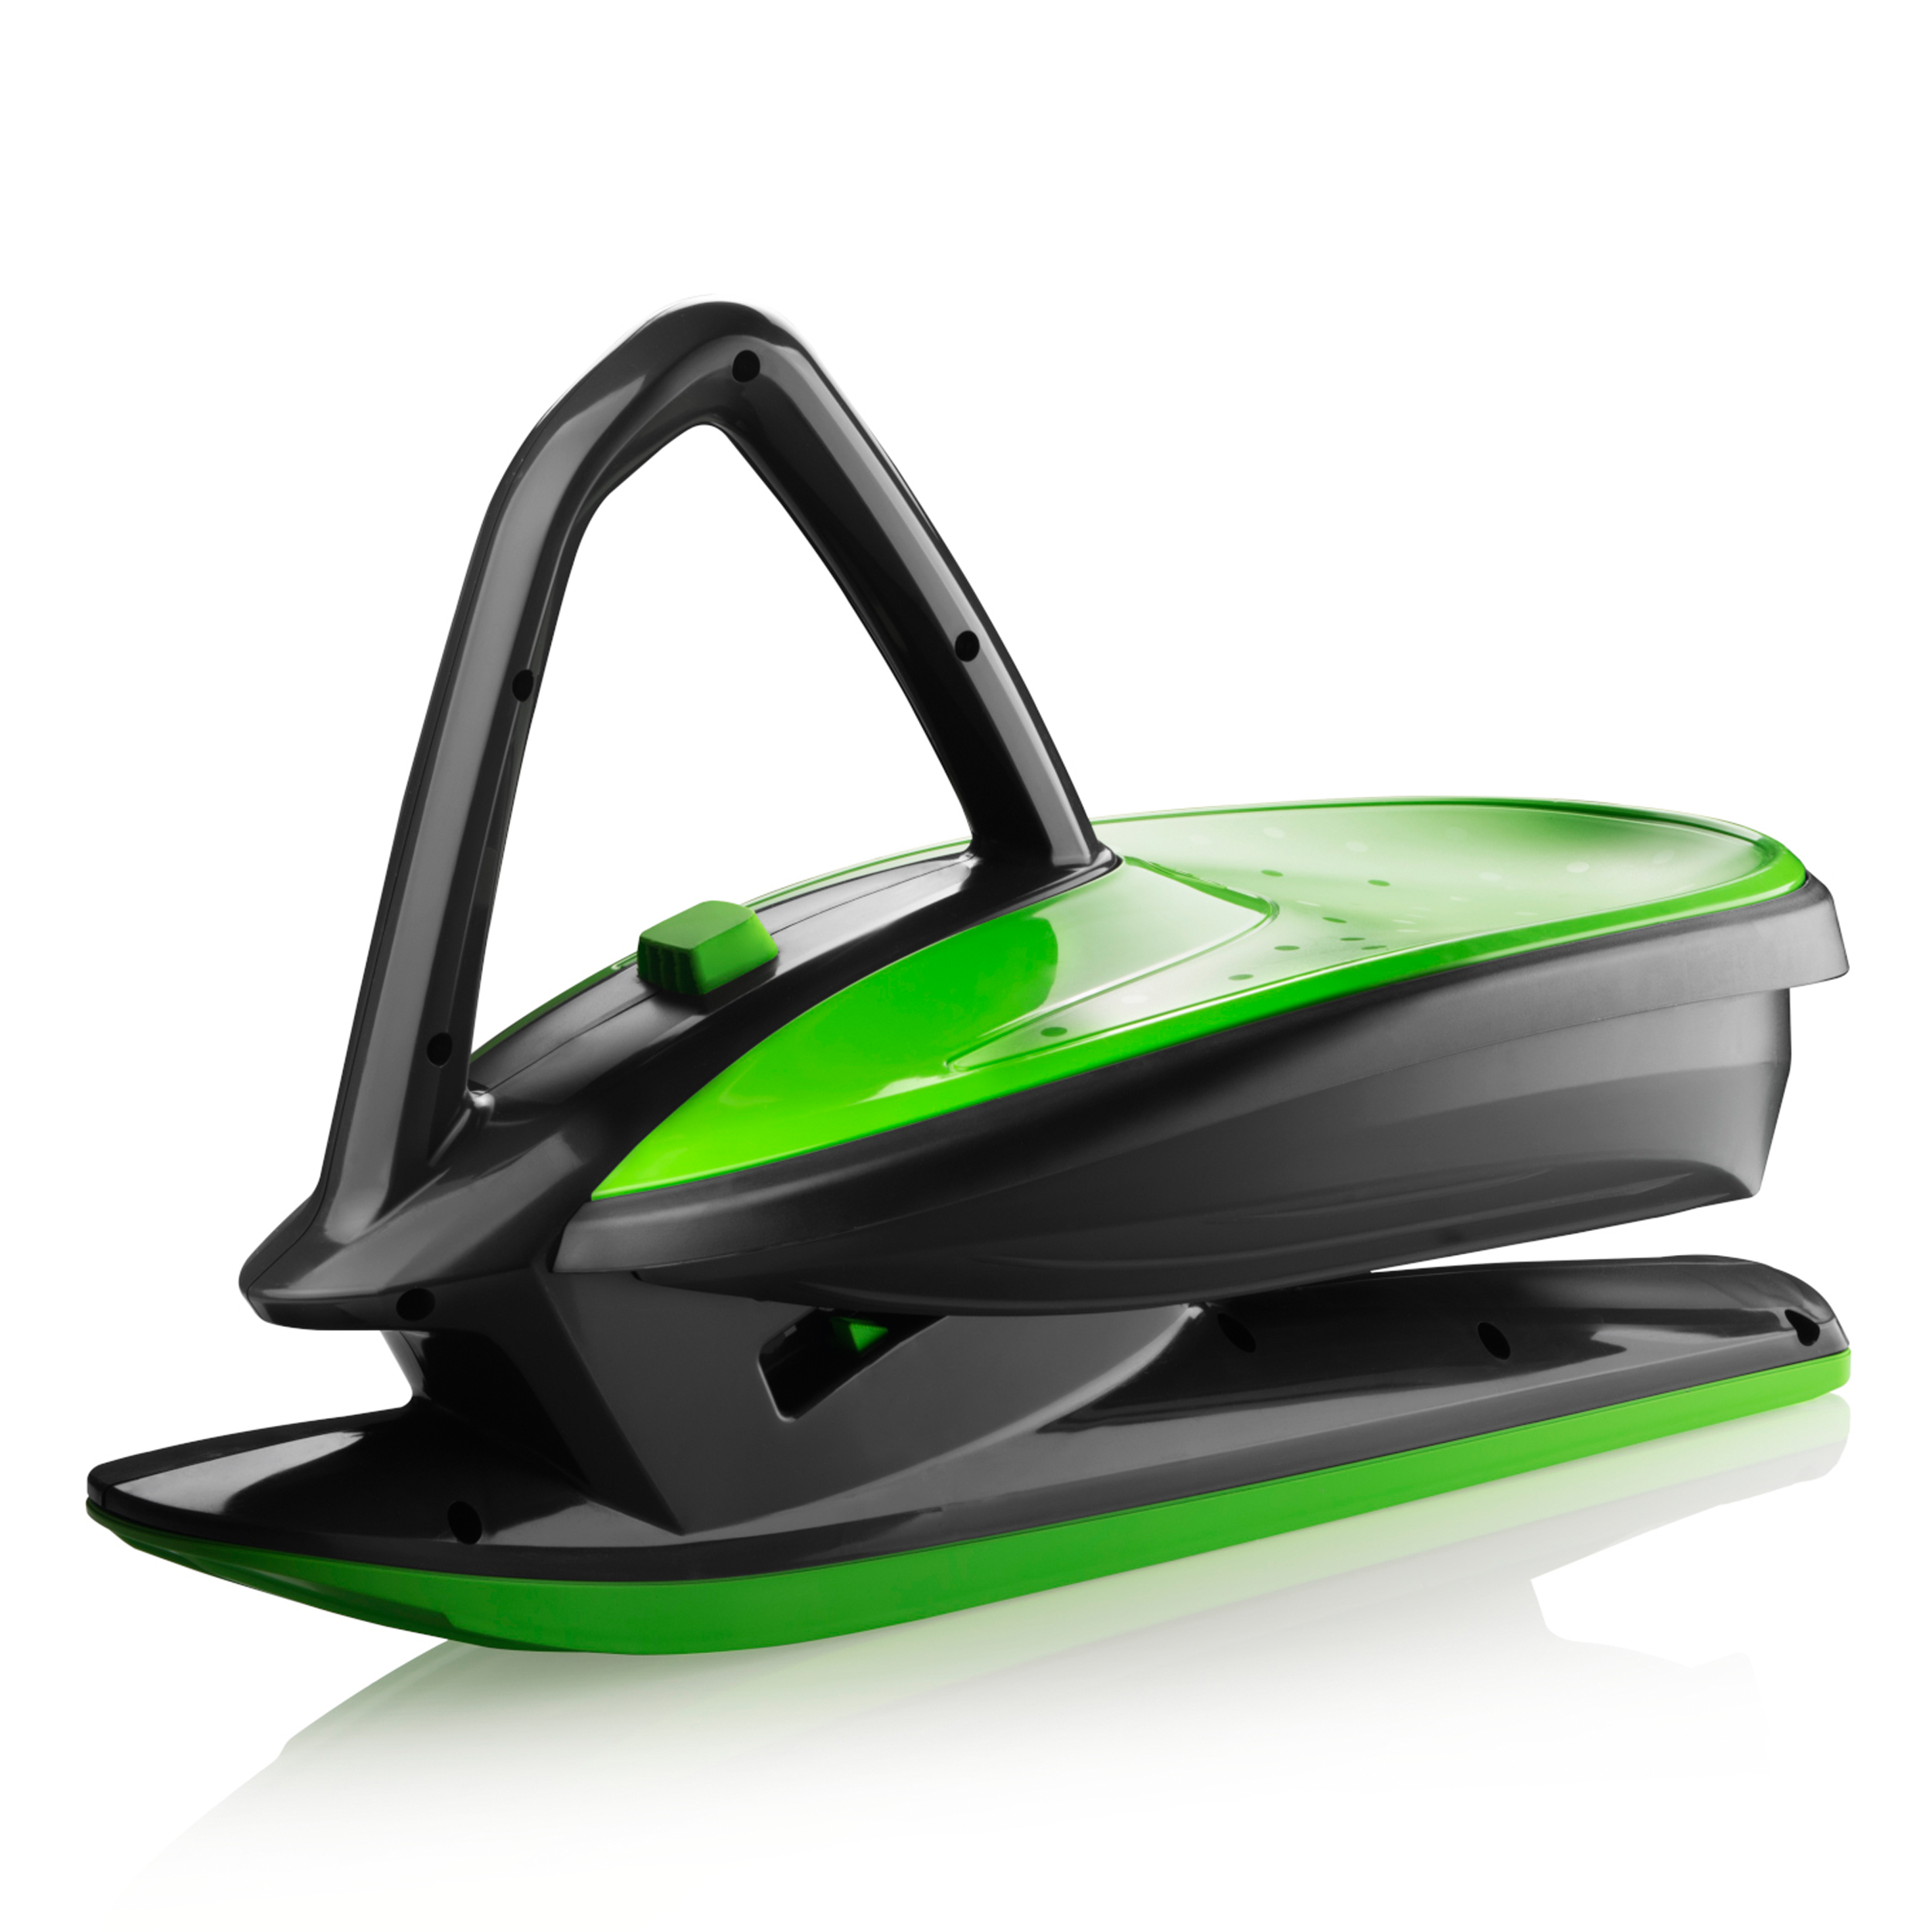 Skidrifter Slope Racer Ski Sled for Kids and Adults with Manual Stability Program Button by Gizmo Riders Mystic Green by Plastkon